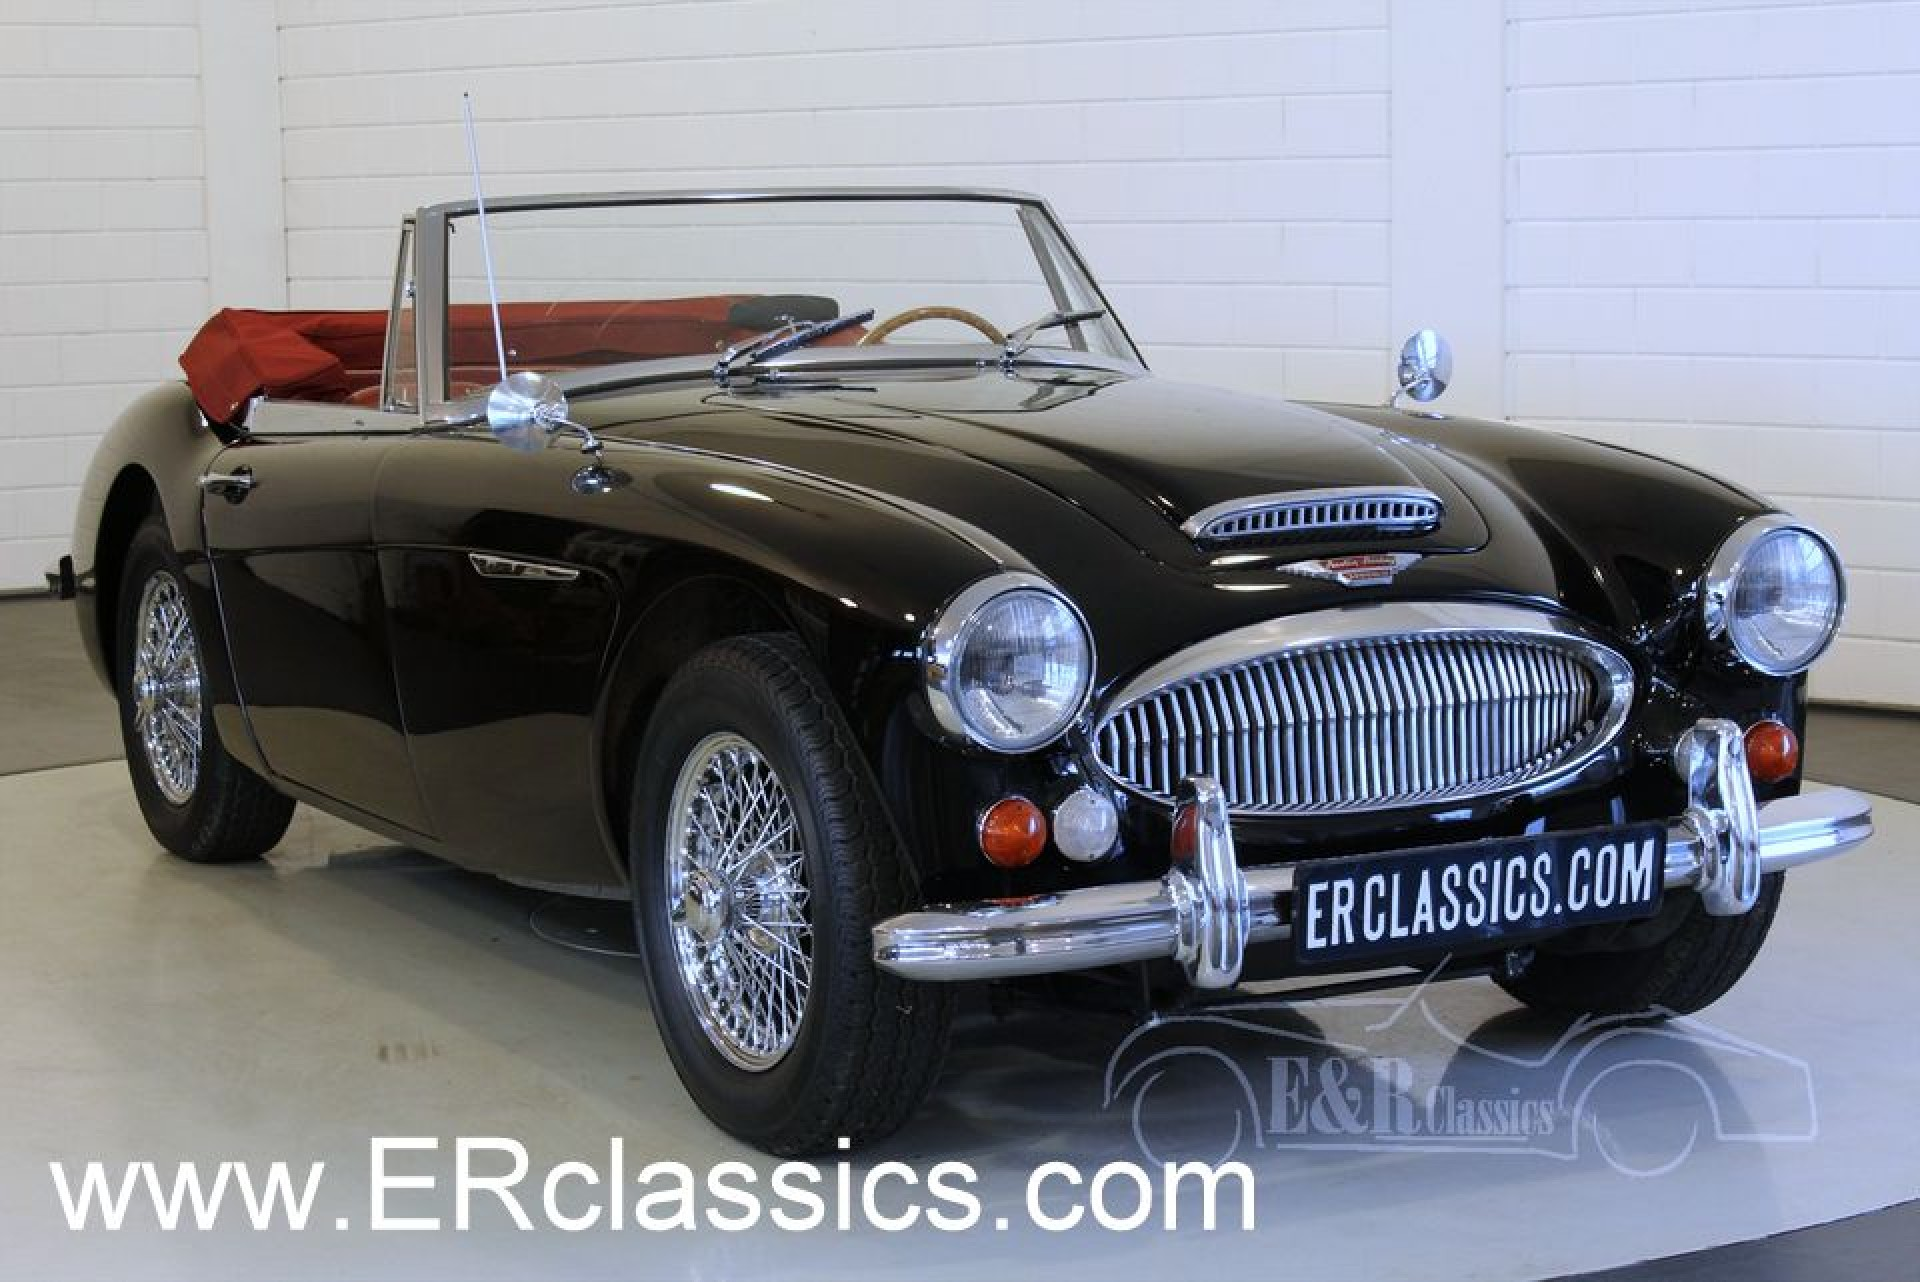 4684b169c47 Austin-Healey 3000 MK3 BJ8 1966 for sale at ERclassics